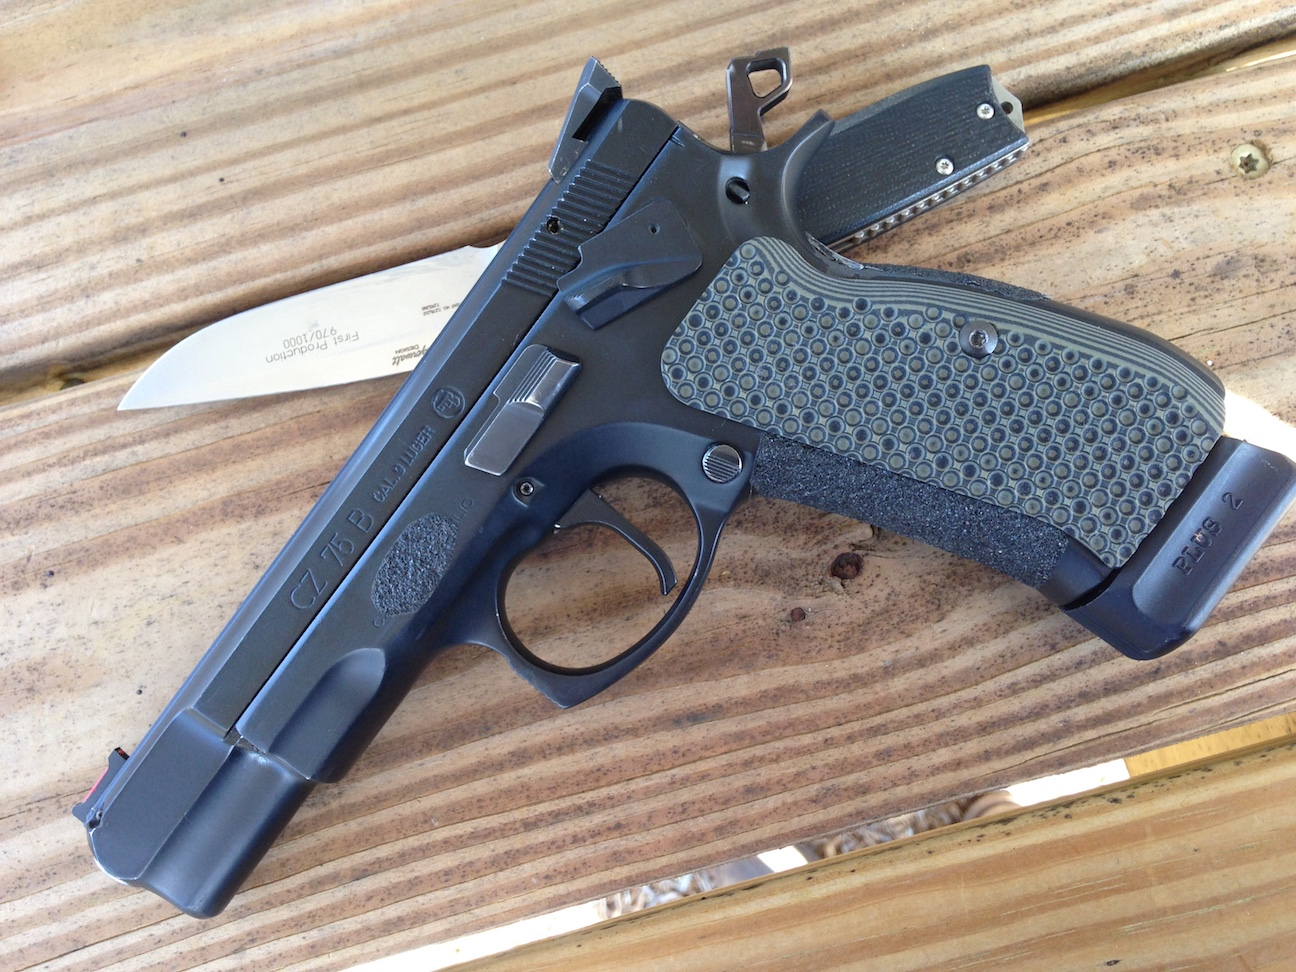 CZ Shadow 1 or 2 - Install of Single Action Trigger - Handgun